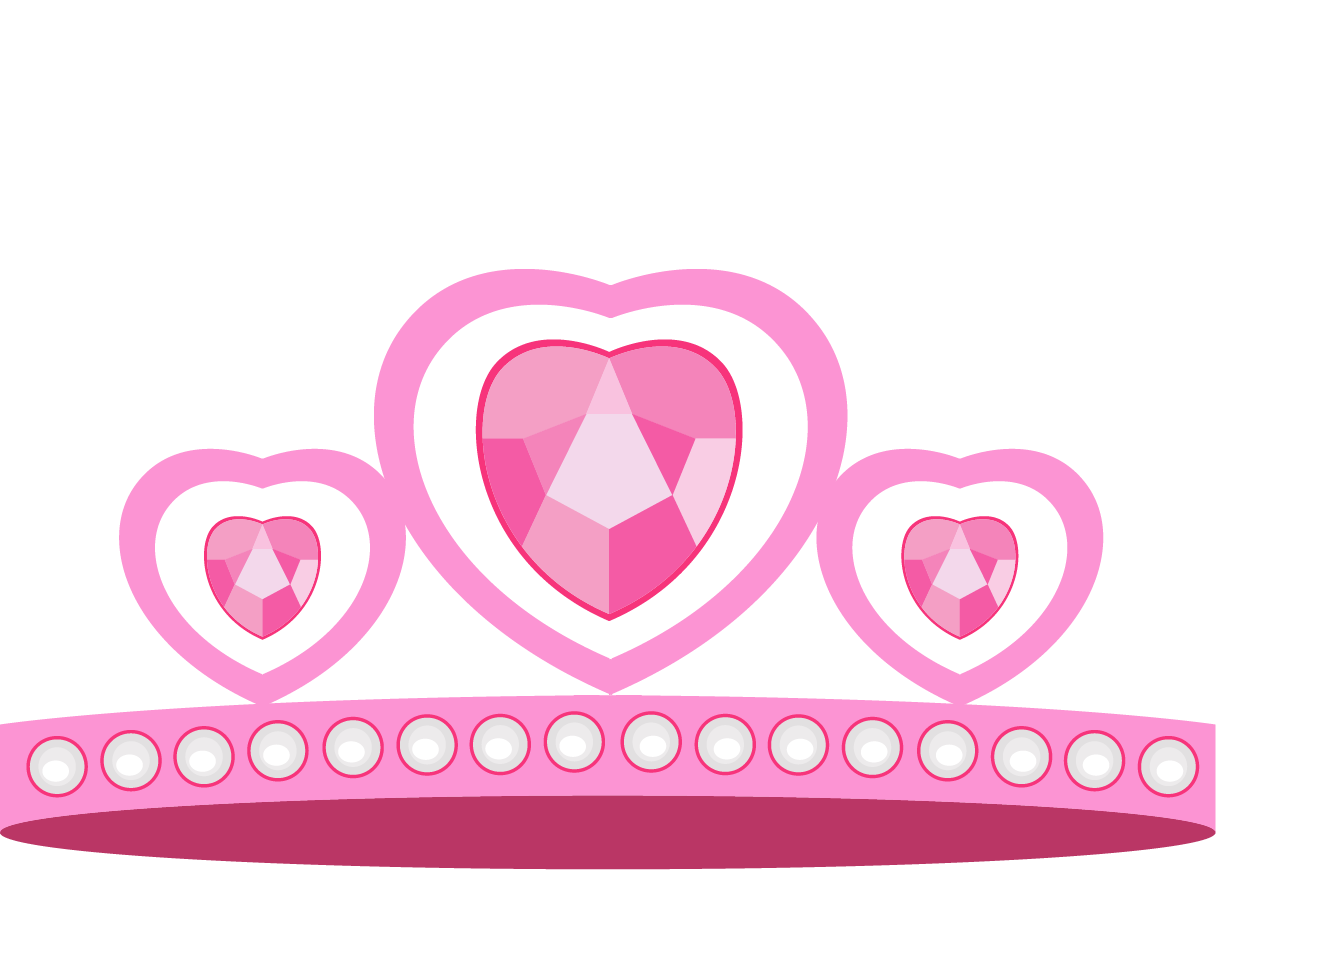 Princess crown with hearts clipart banner transparent download Cartoon princess crown vector material 1321*956 transprent Png Free ... banner transparent download